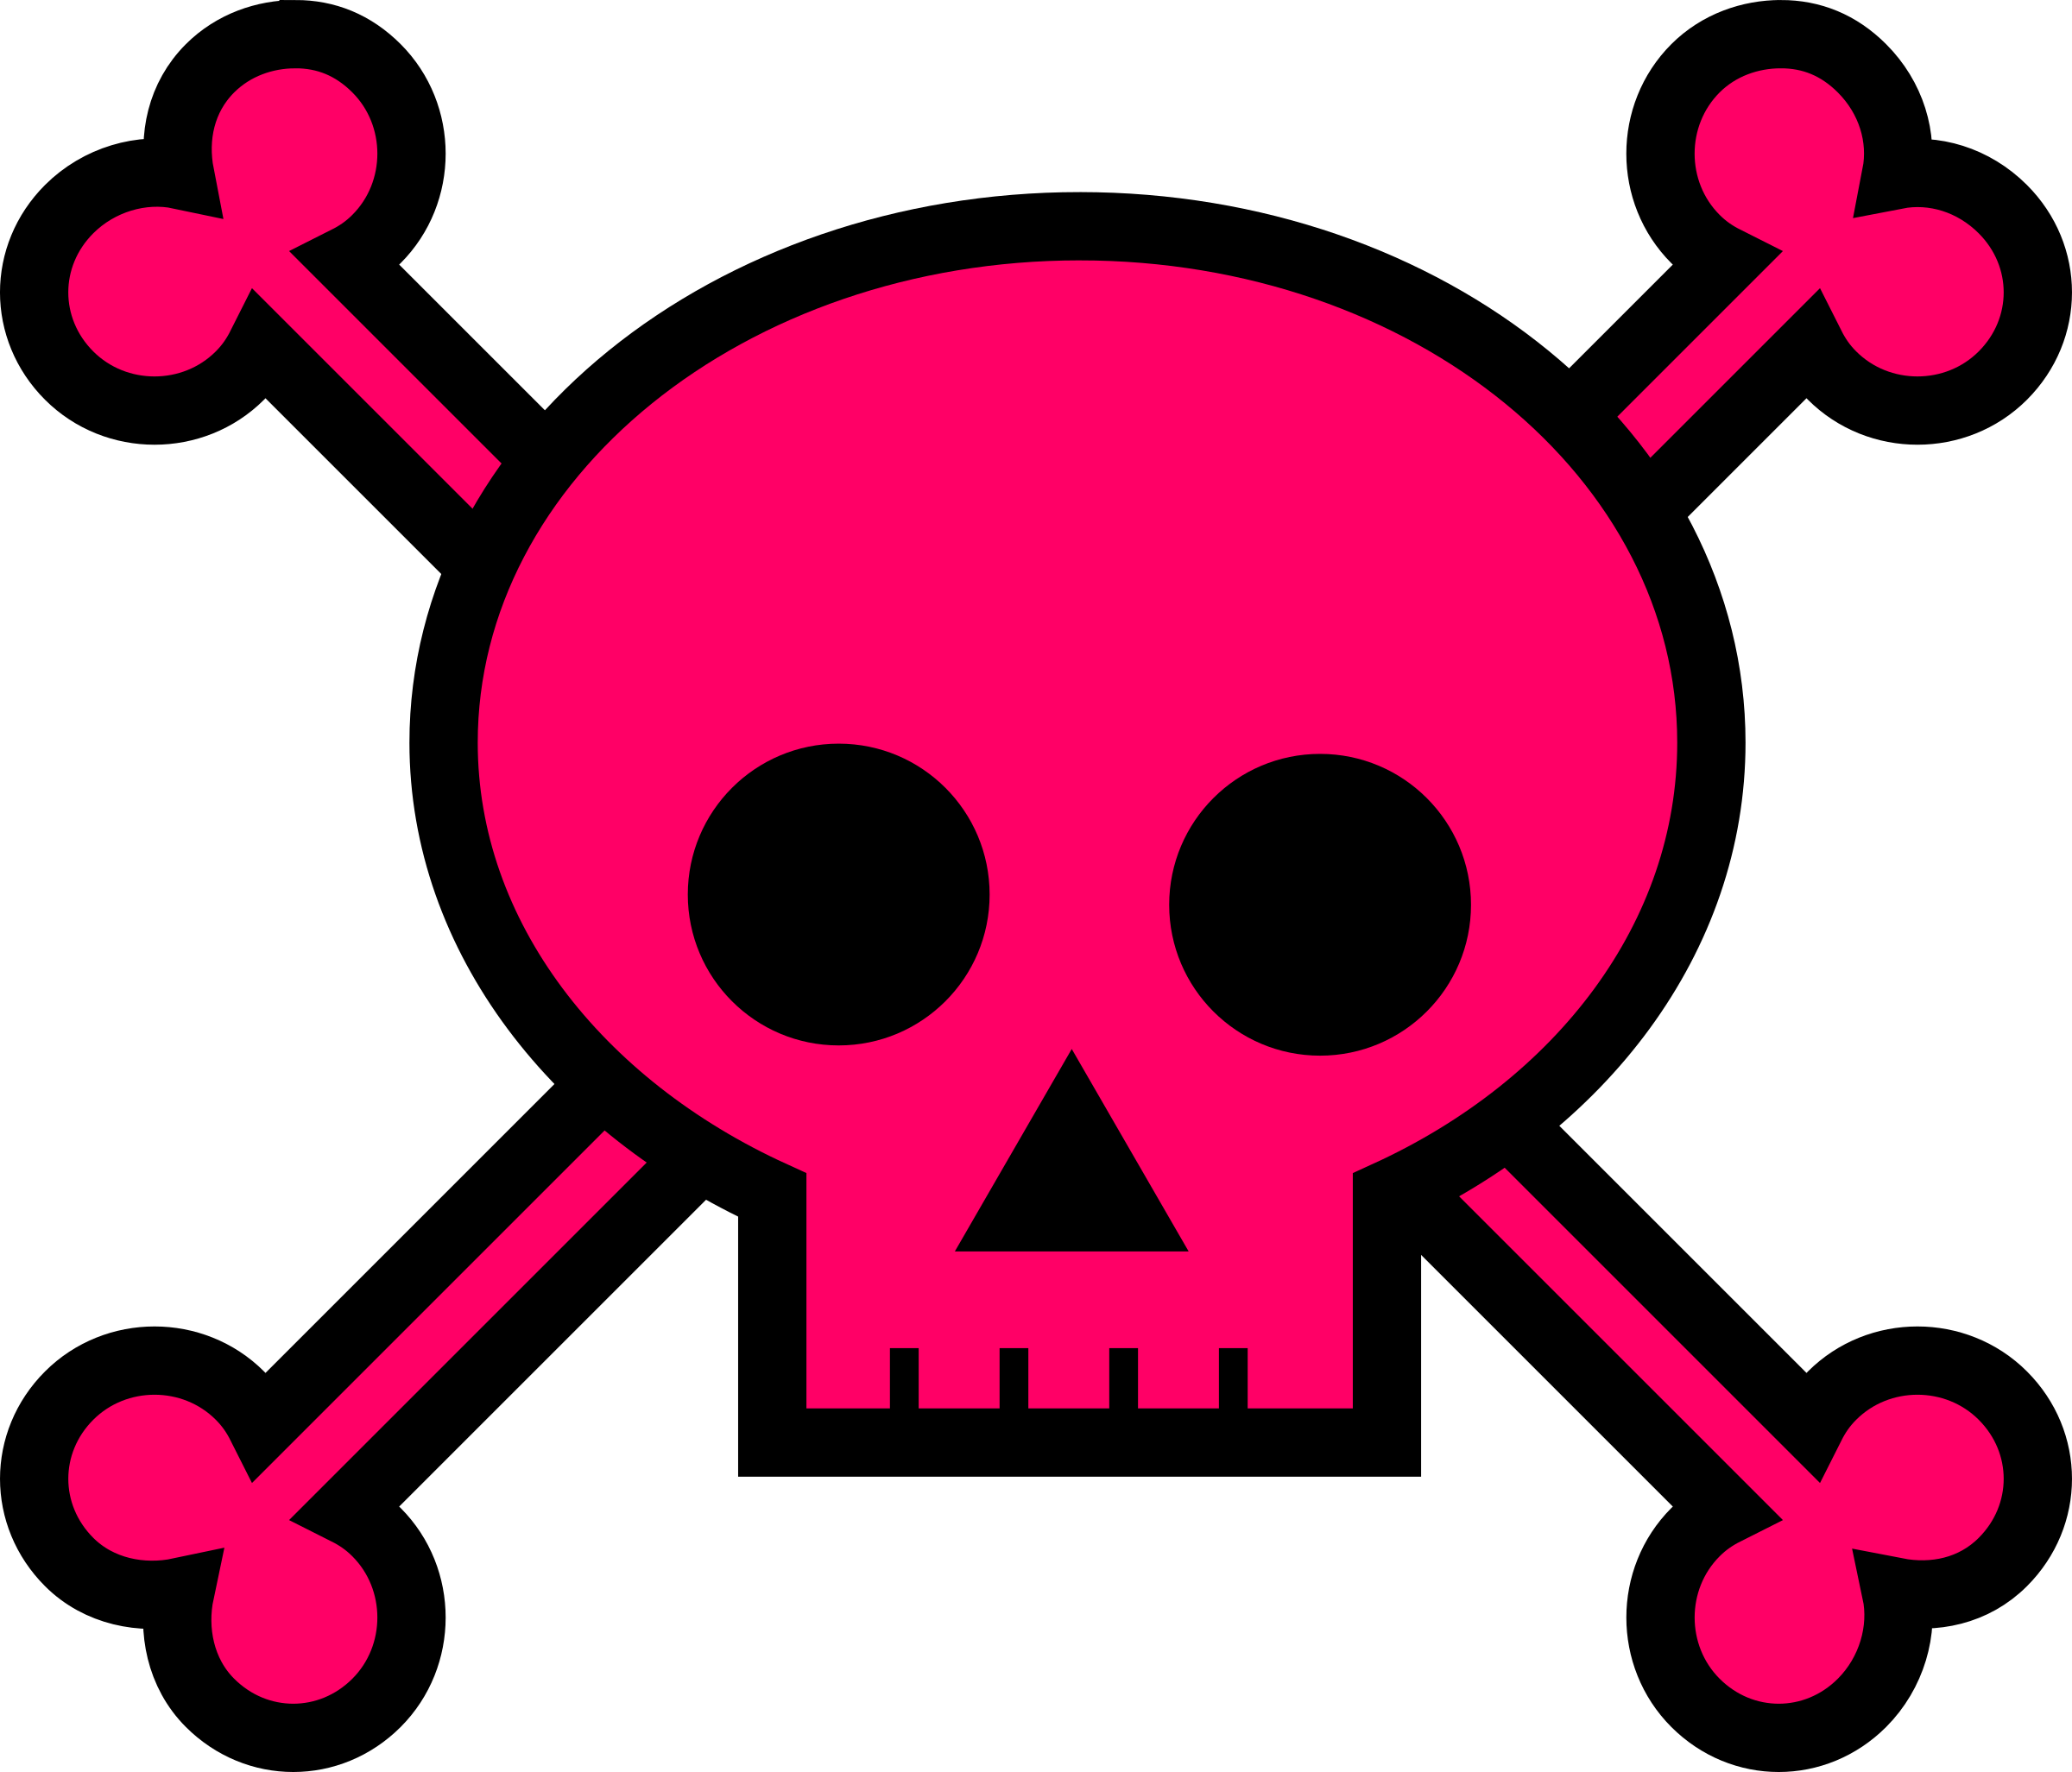 Clipart skull and cross bones clip art library Clipart - Skull and Crossbones Large Pink clip art library